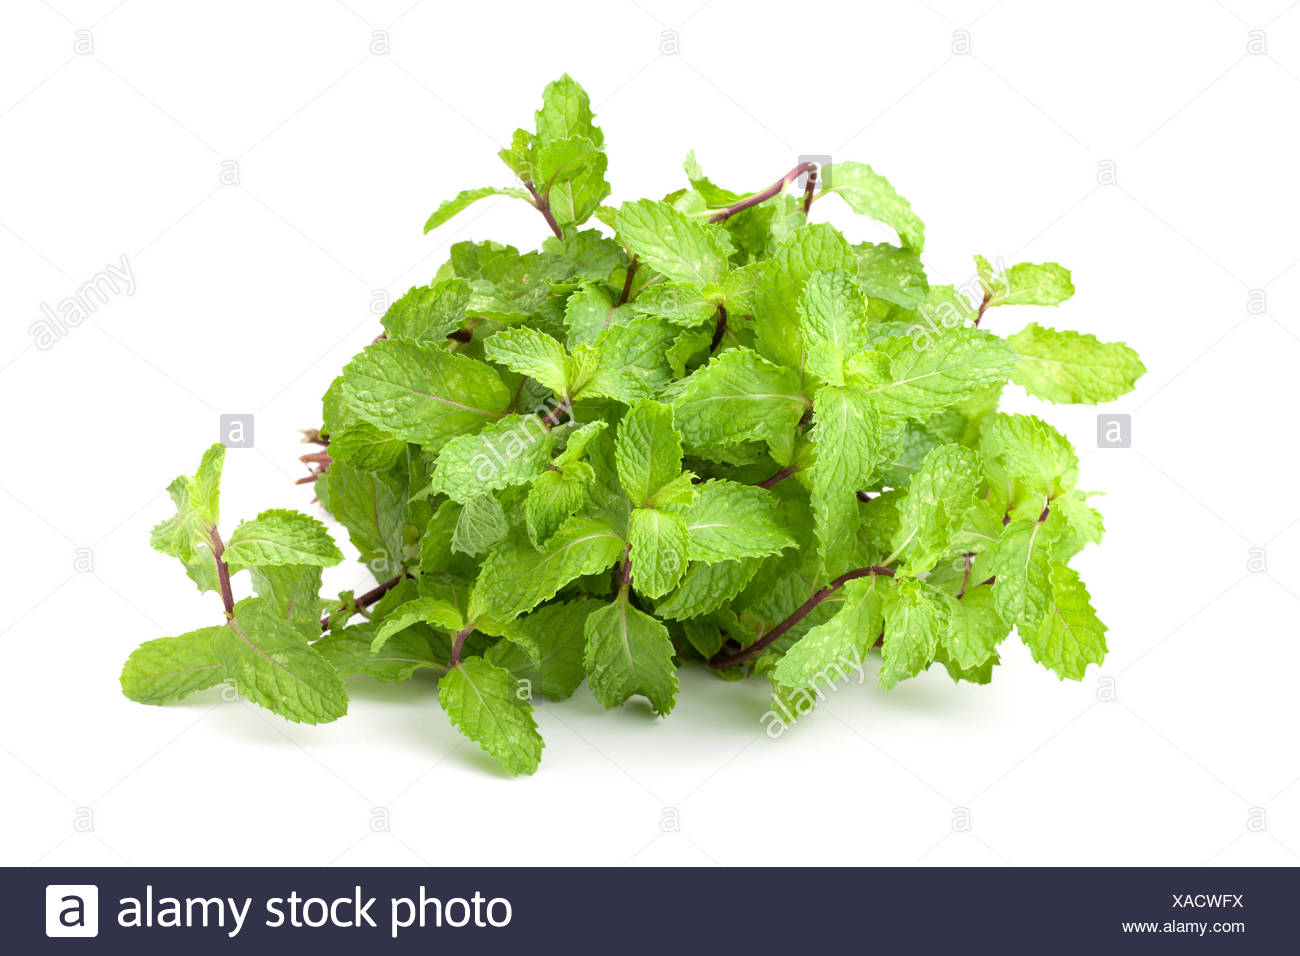 Kuche Minze Oder Marsh Mint Stockfoto Bild 281795918 Alamy